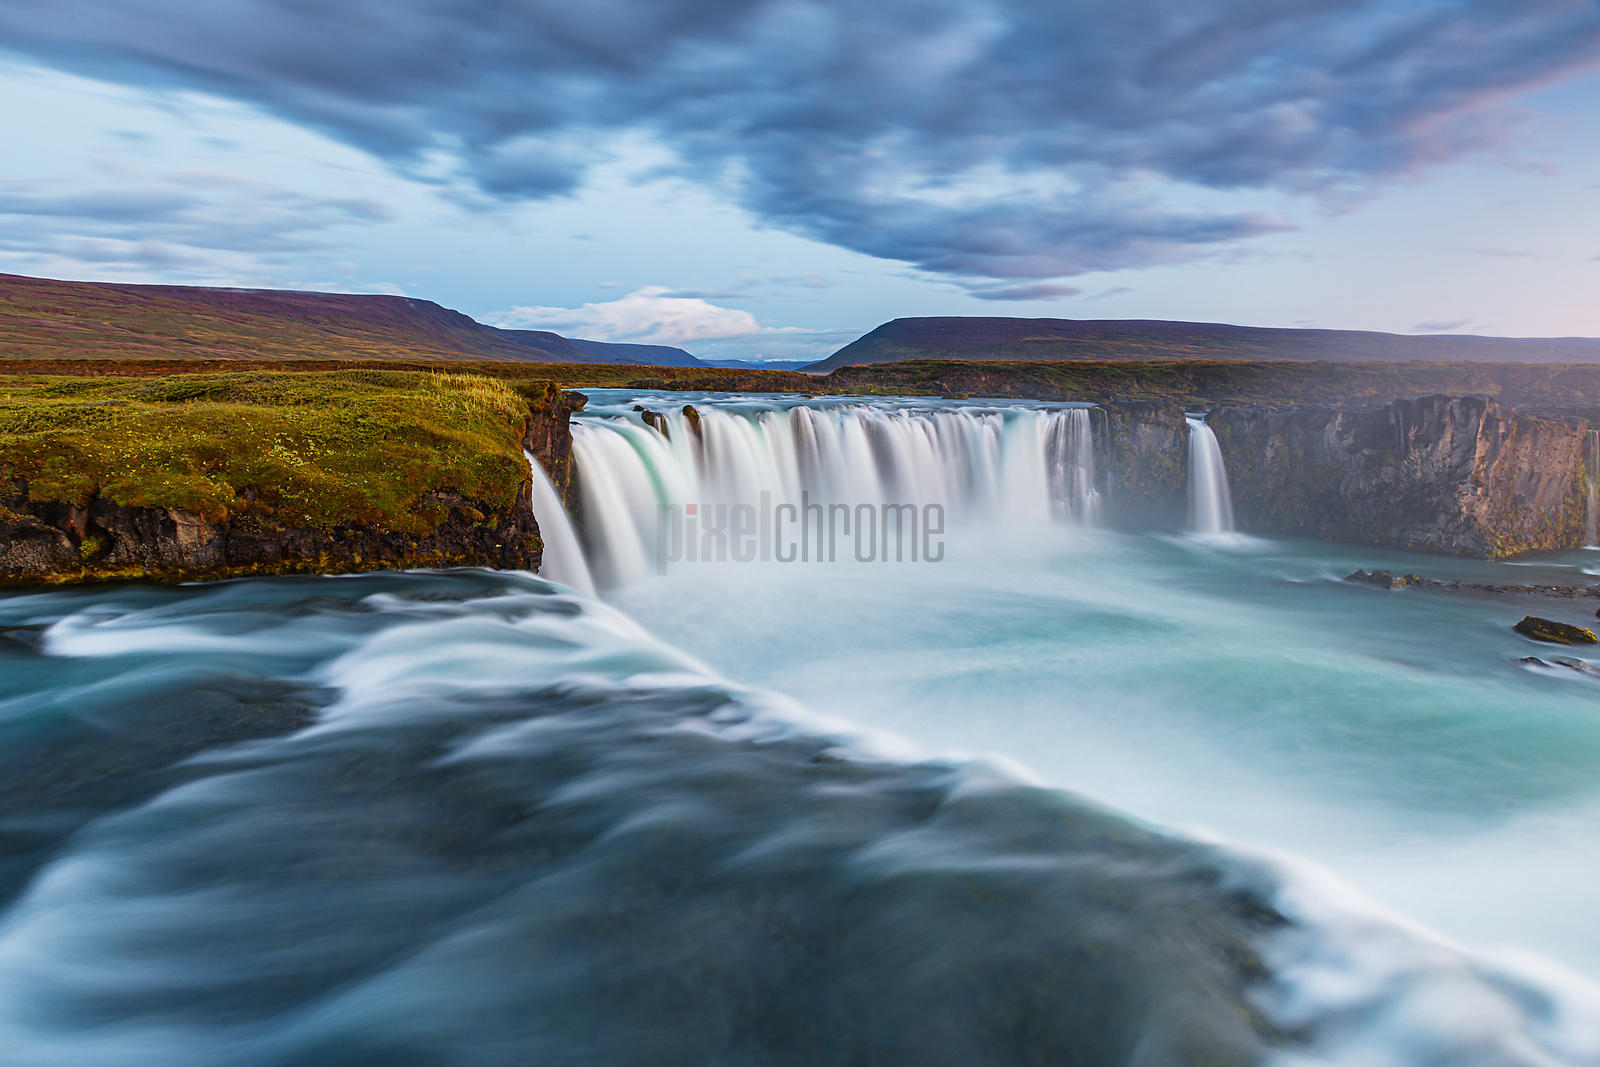 The Goðafoss waterfall is one of the most spectacular waterfalls in Iceland. The river Skjálfandafljót falls 12 meters over a...